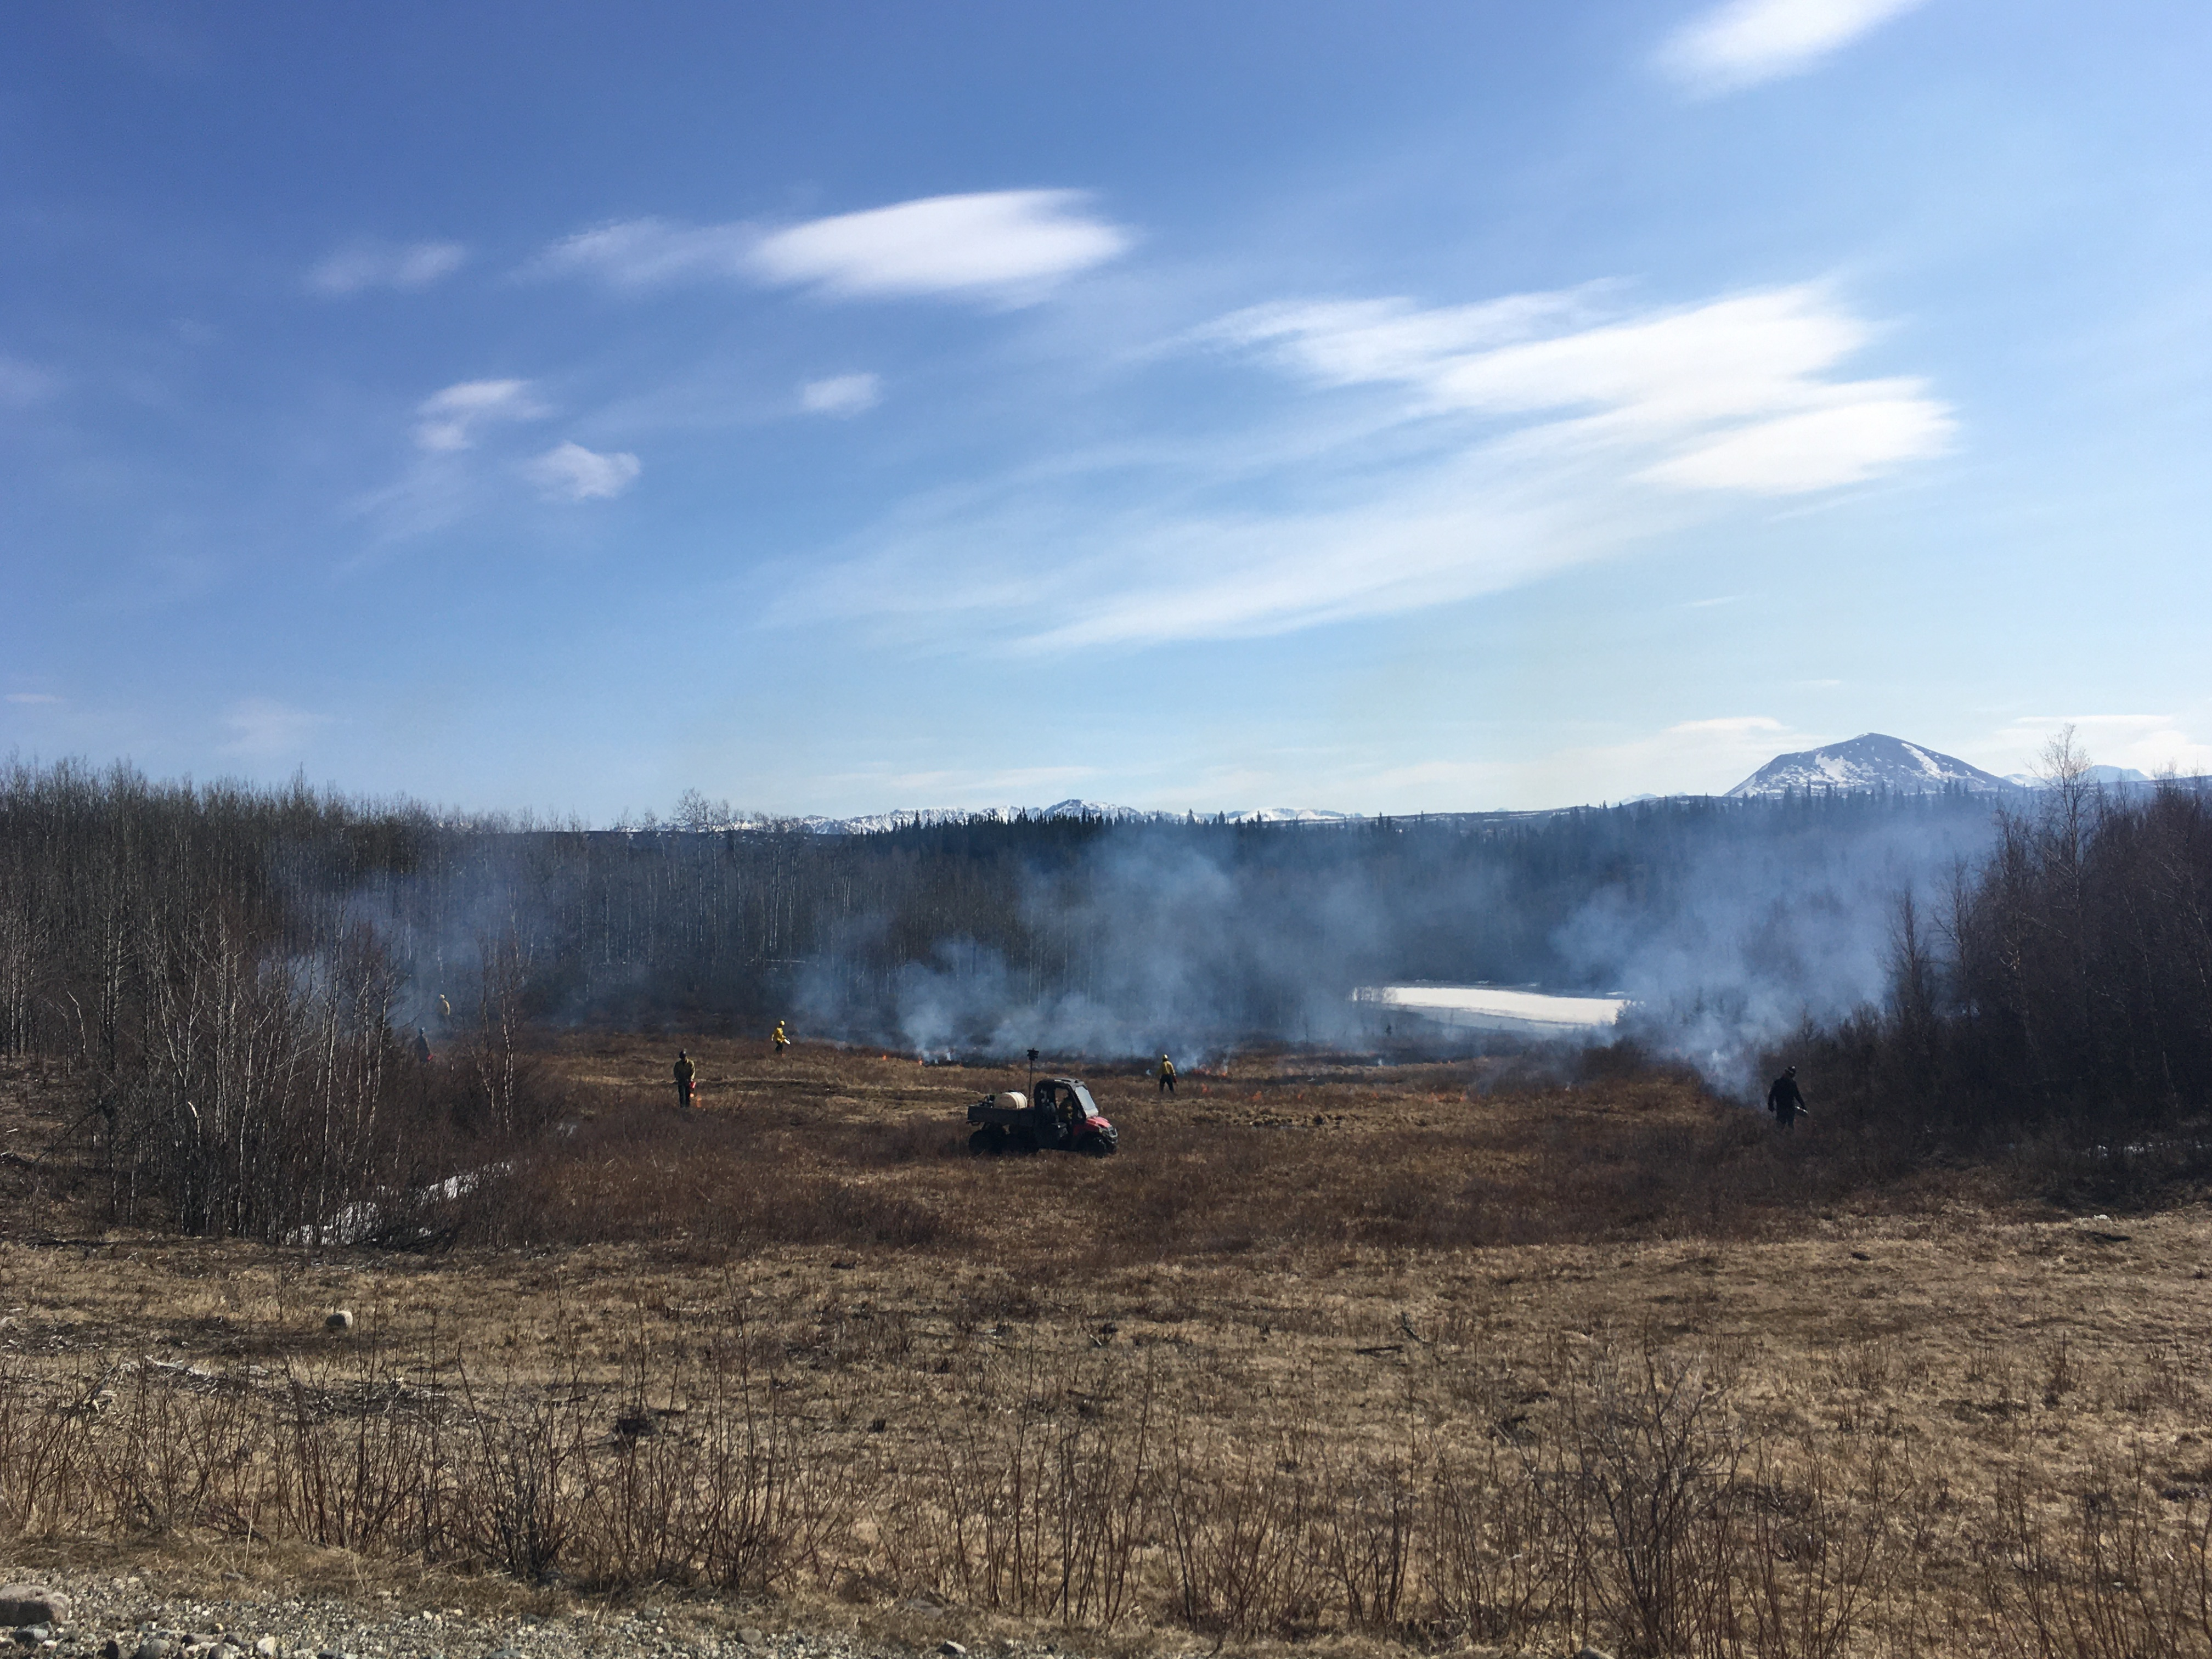 Photos of firefighters in a field with smoke.